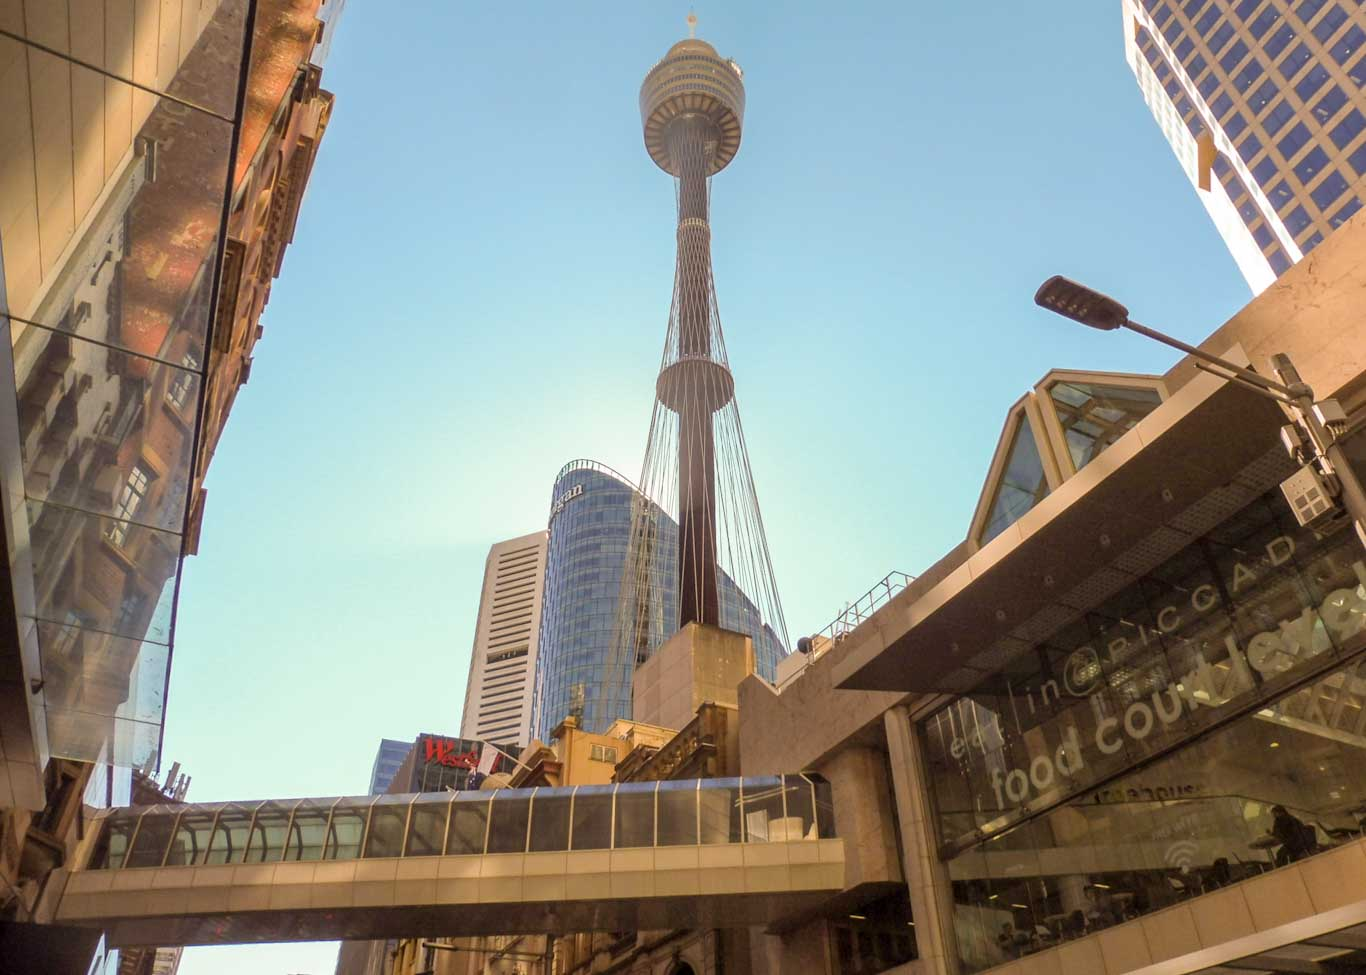 Sydney tower Sydney in 2 days